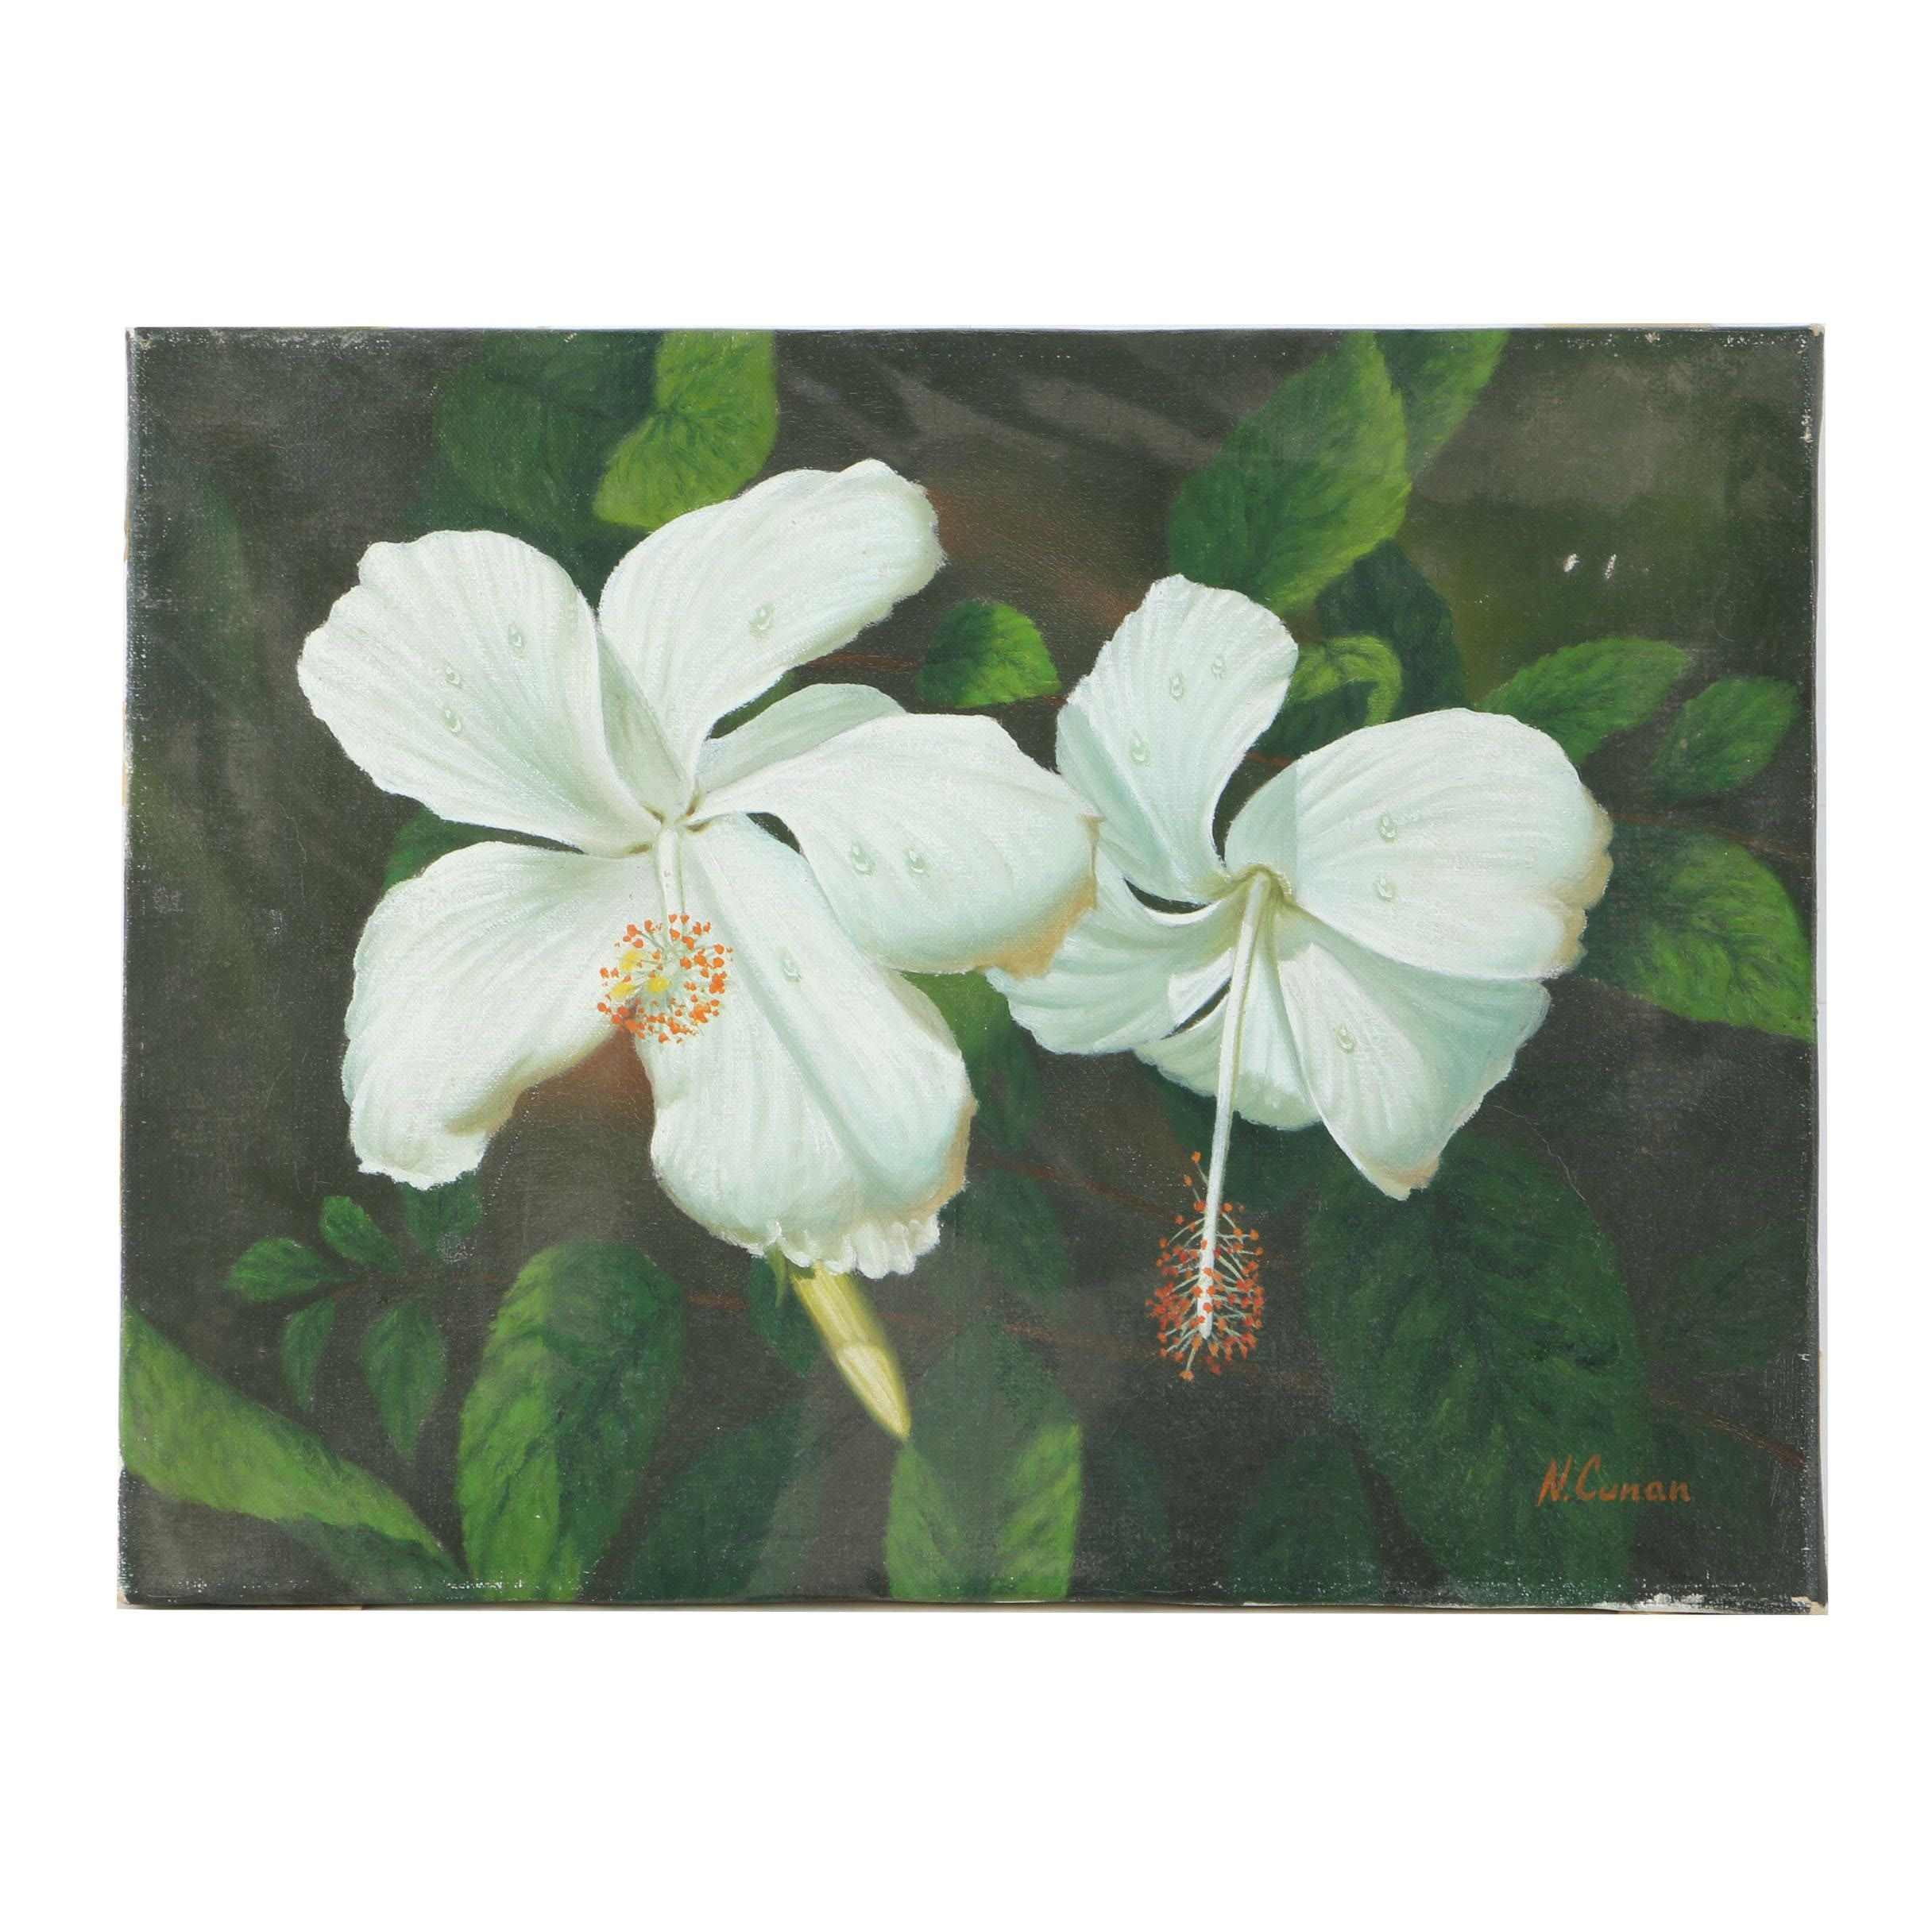 N. Cunan Oil Painting on Canvas of Hibiscus Flowers